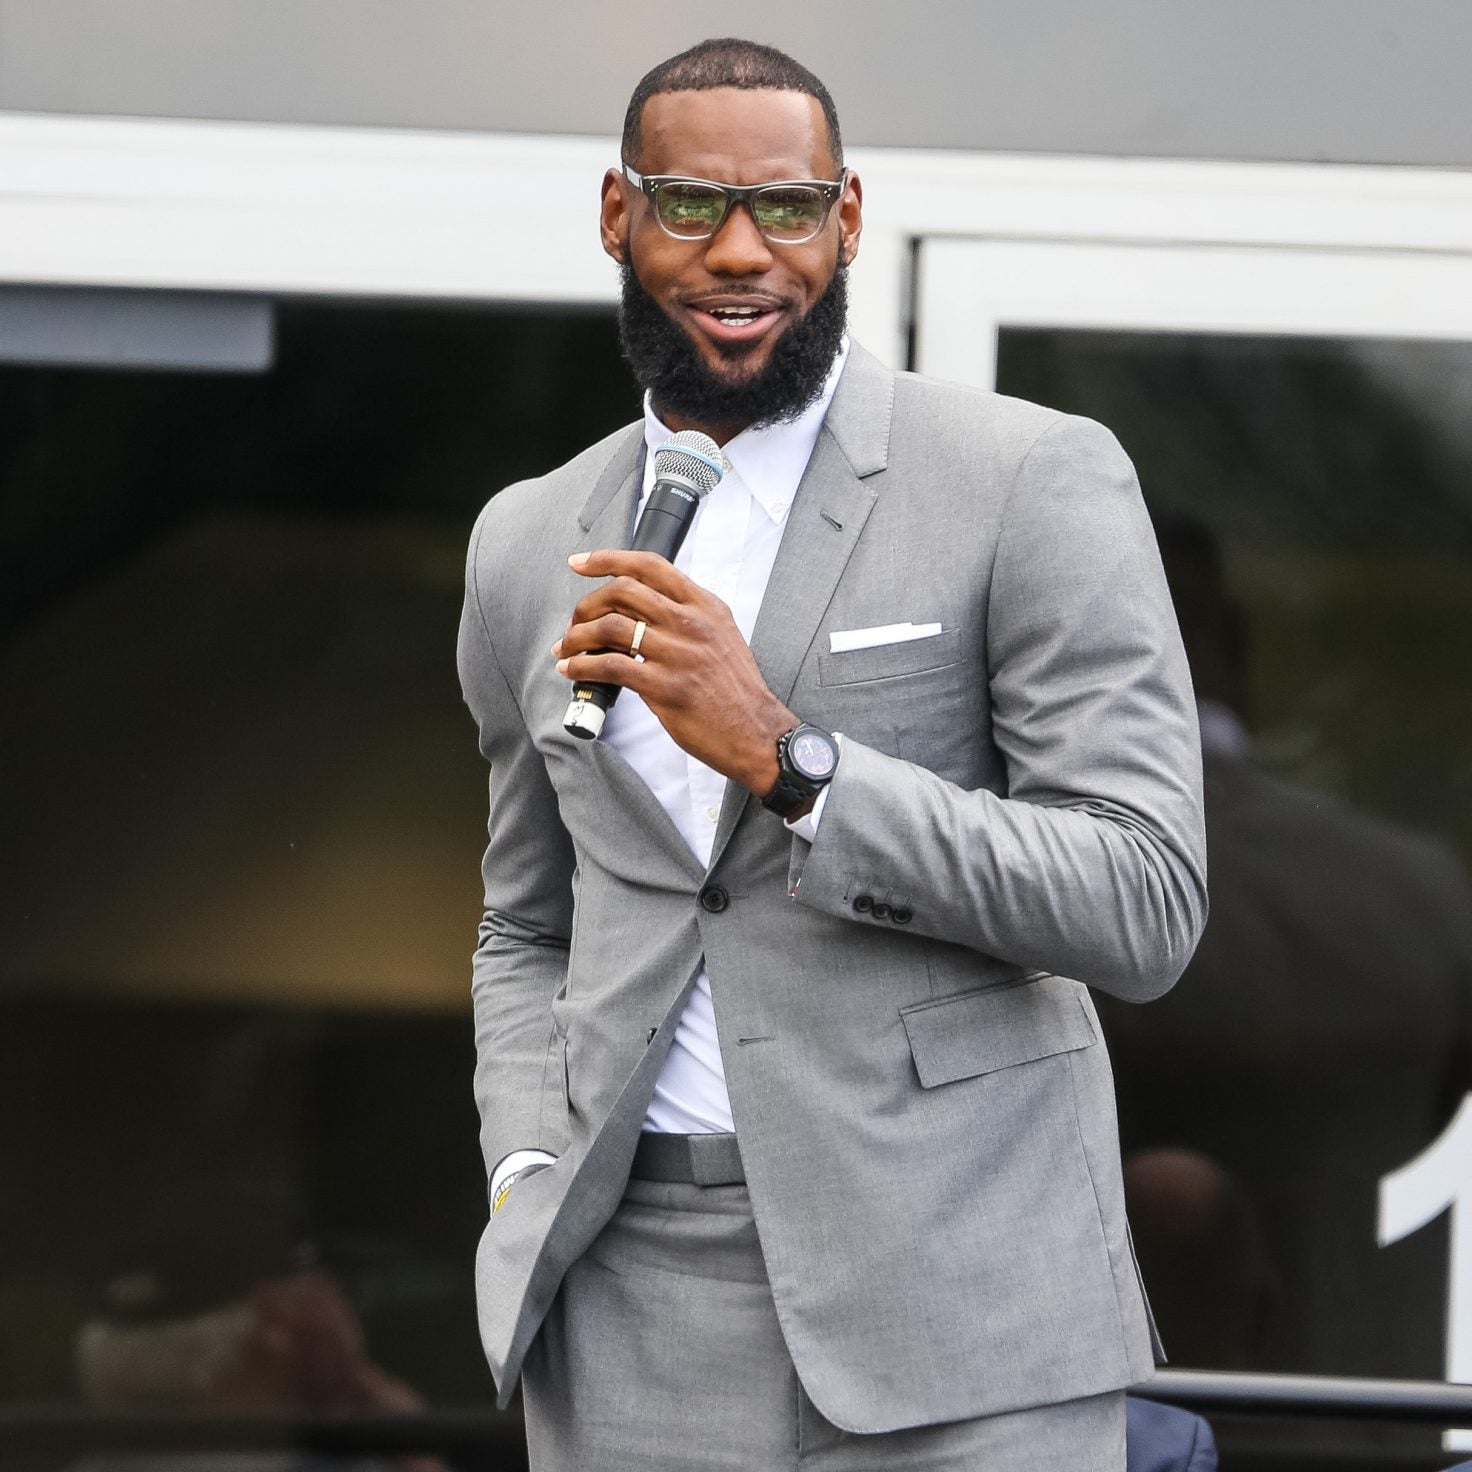 LeBron James To Open Transitional Housing For I Promise Students + 9 Other Headlines We're Talking About